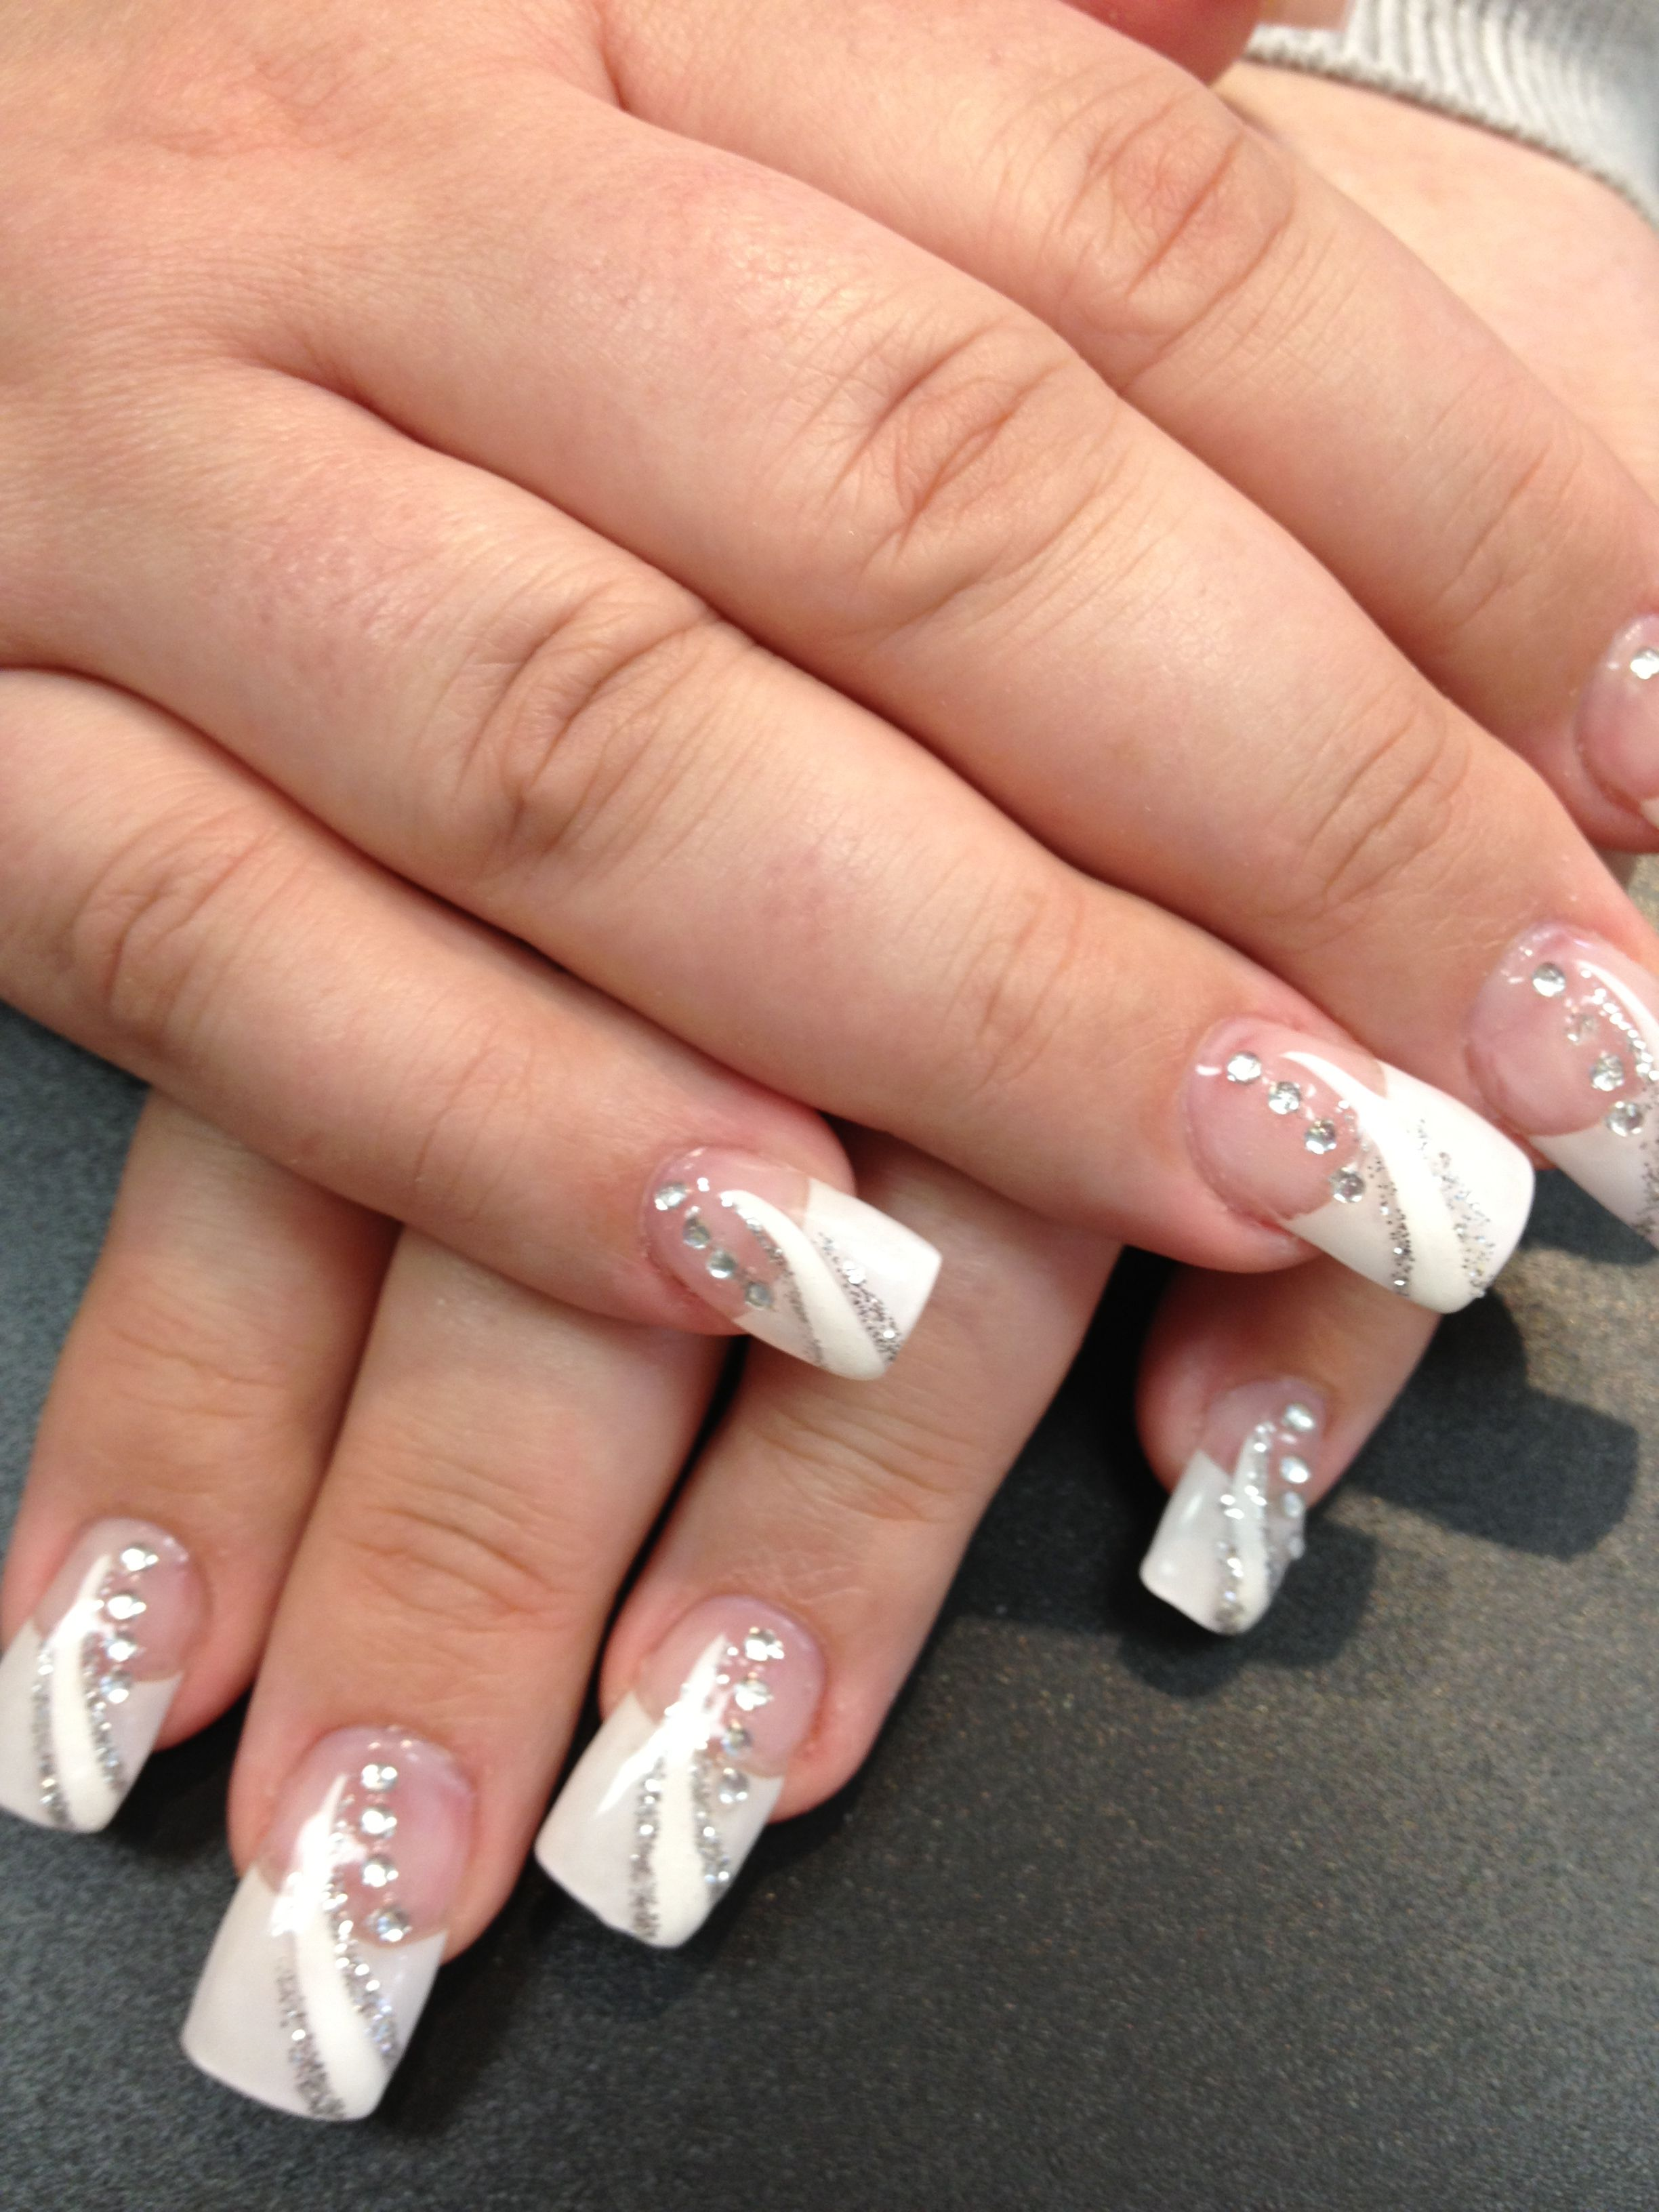 Pin by Nhu (Nancy) Nguyen on Nails design by Hip Hop nails  White